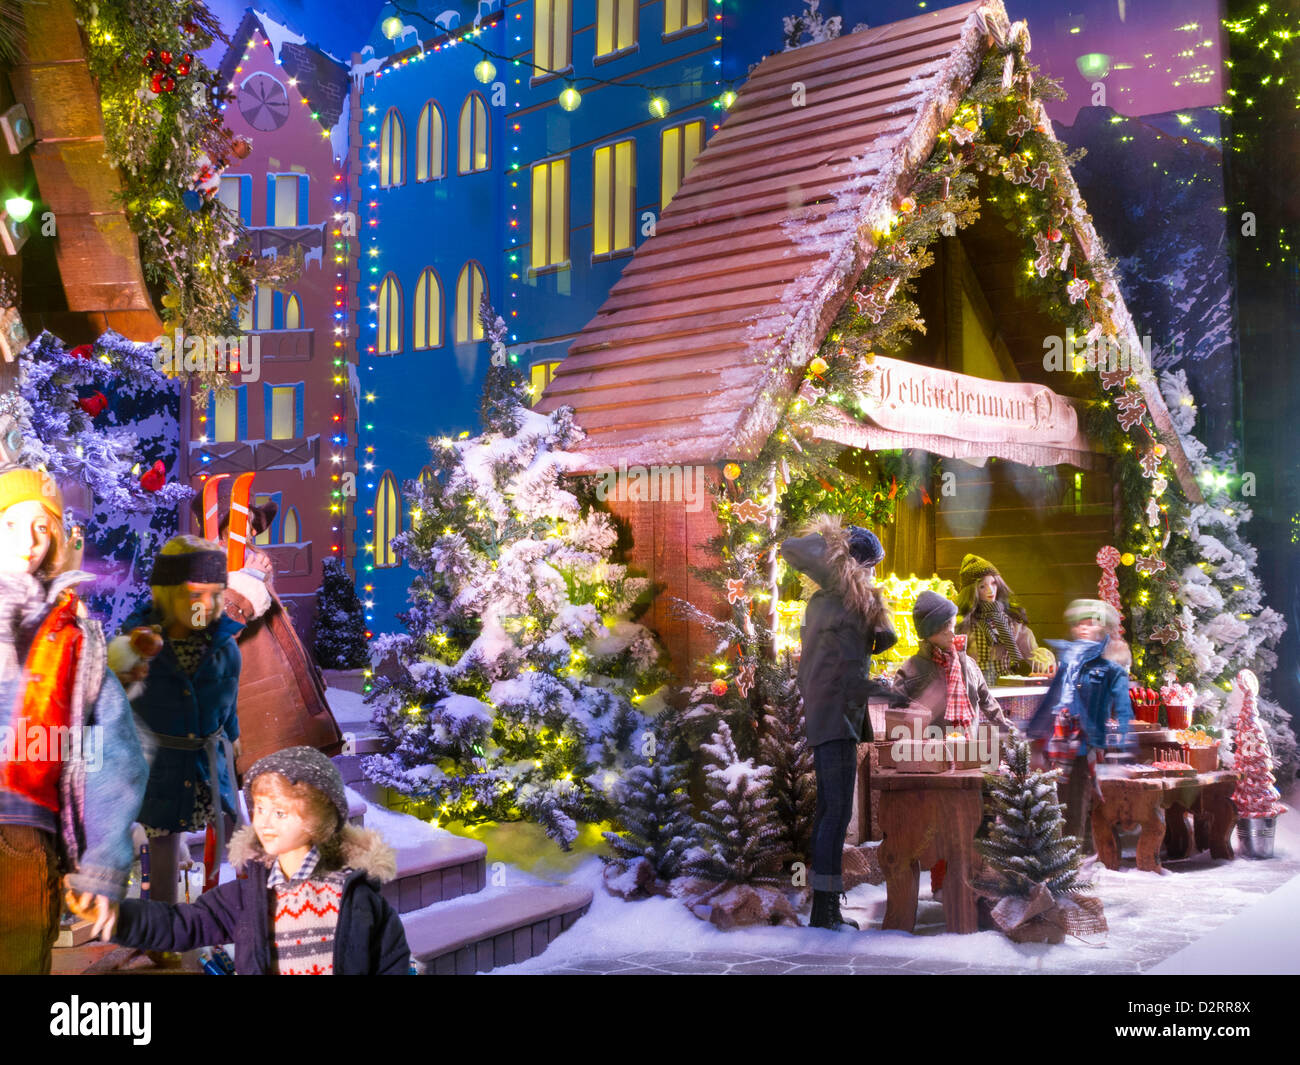 Lord & Taylor 2021 Christmas Windows Photos Lord And Taylor Christmas High Resolution Stock Photography And Images Alamy